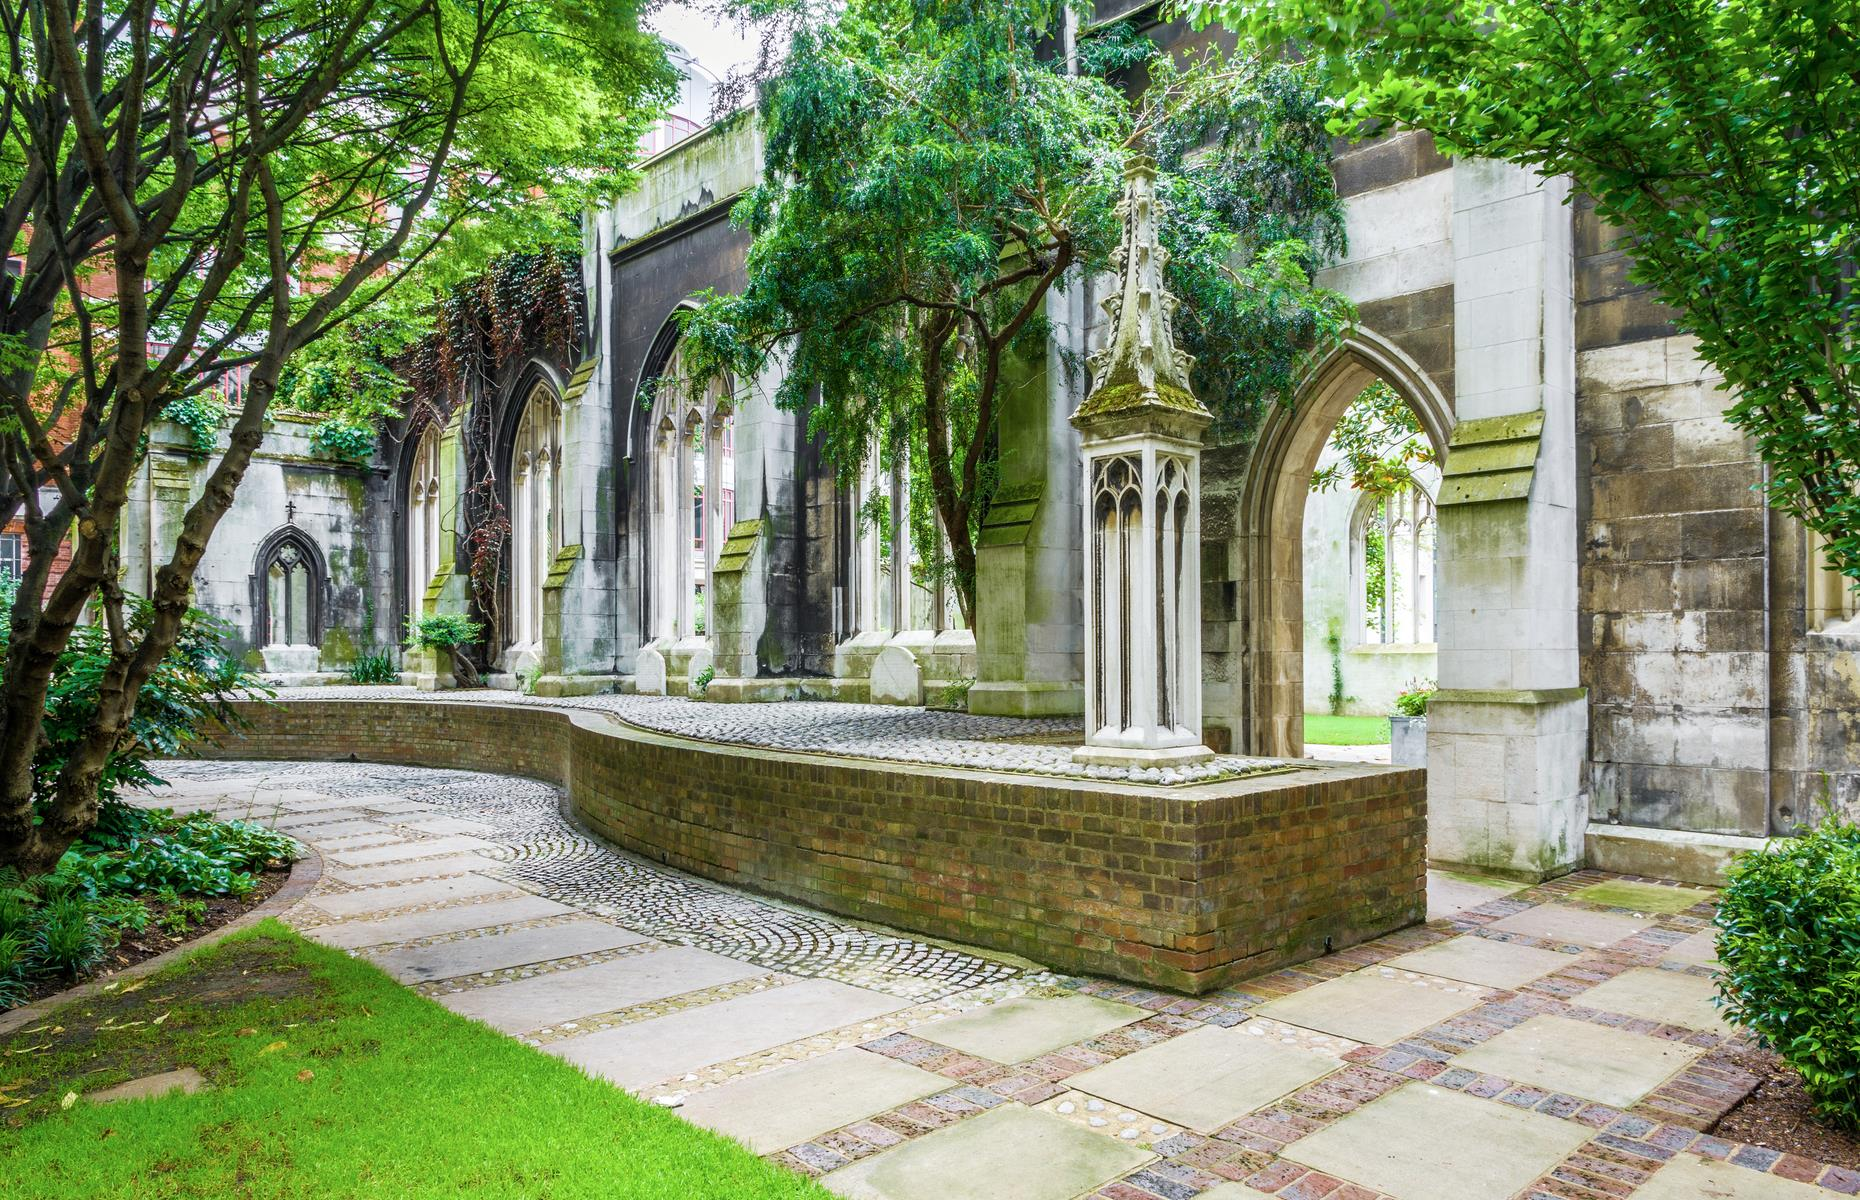 Slide 31 of 64: St Dunstan's remained tattered until the 1960s, when the city council decided to convert it into a public garden. Now the church is dotted with benches, trees and fountains, and acts as a serene bolthole away from the bustle of the city.